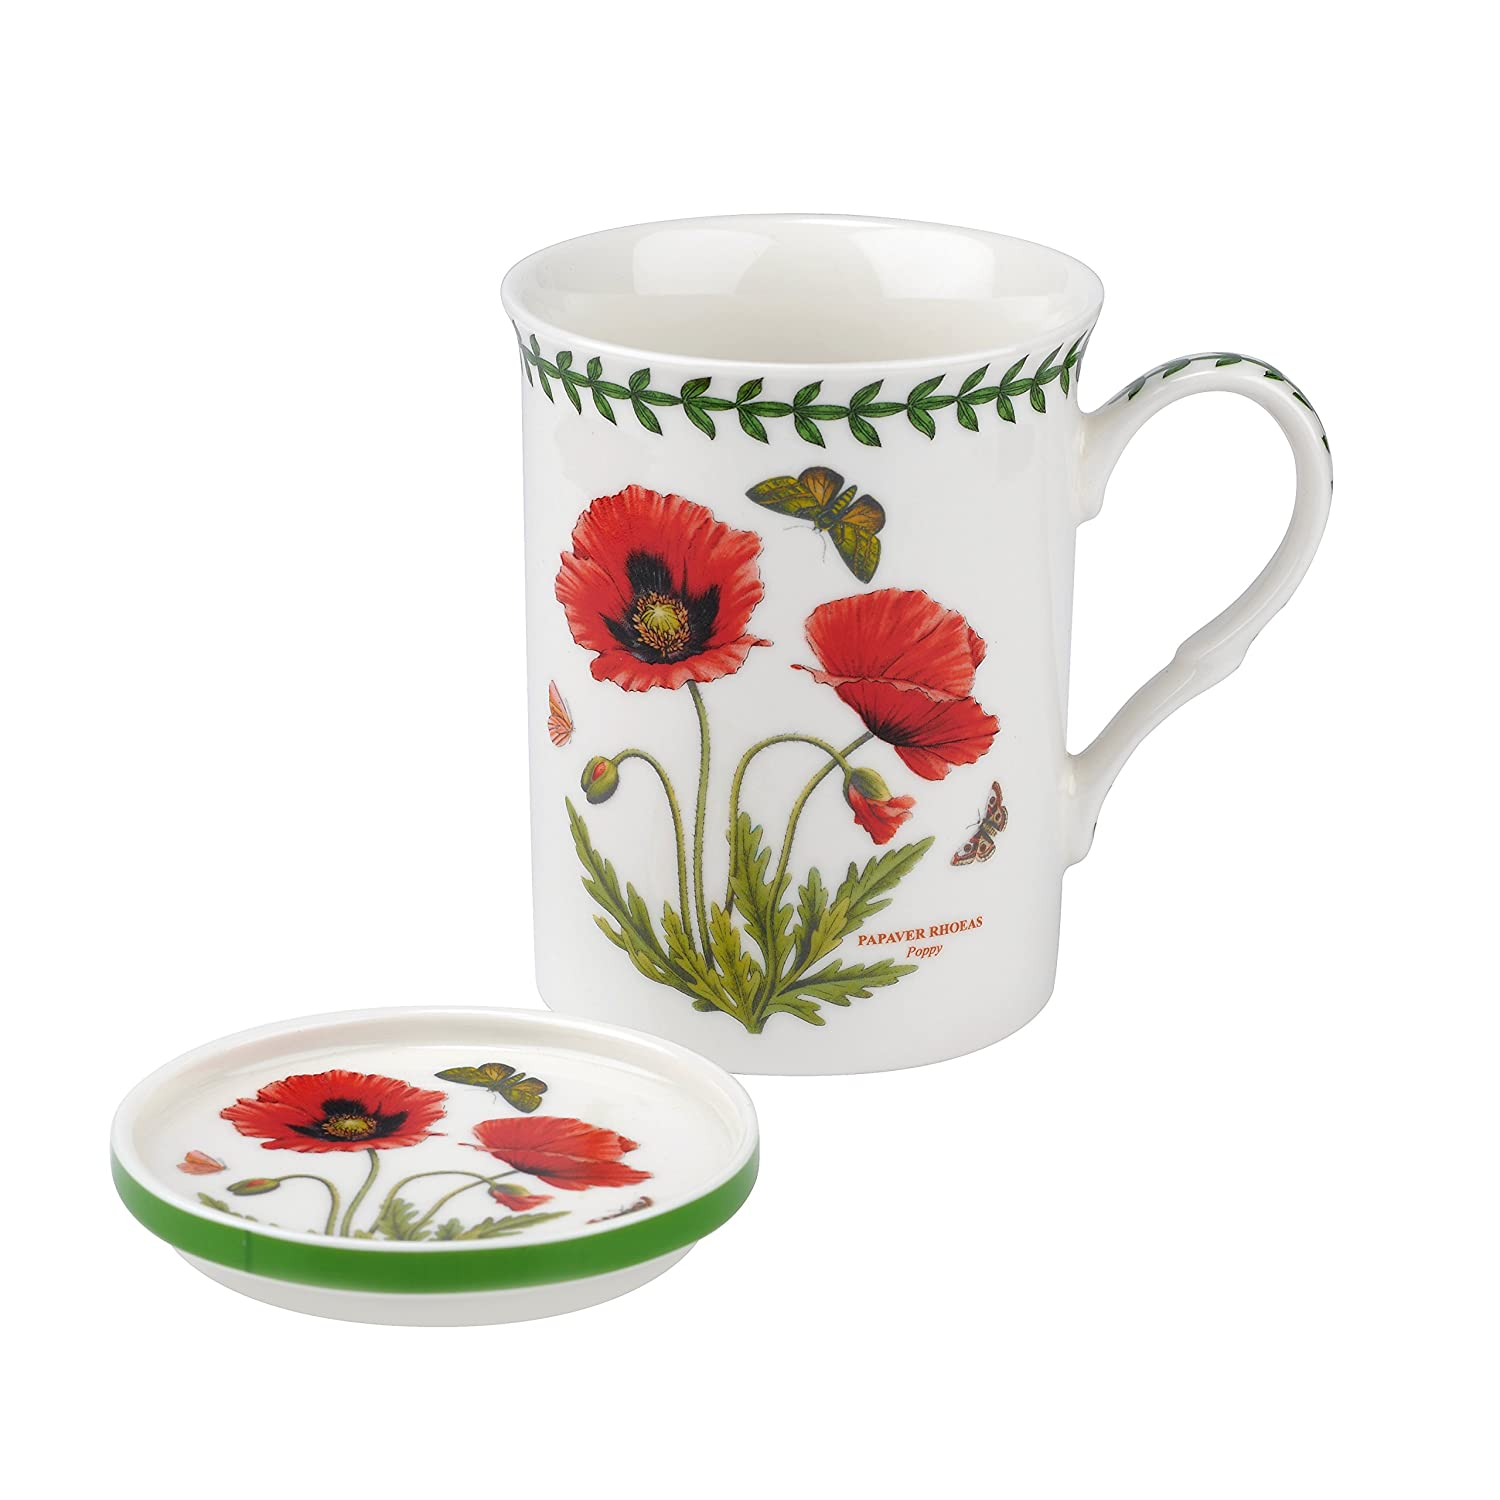 Portmeirion Botanic Garden Poppy Mug and Coaster Set